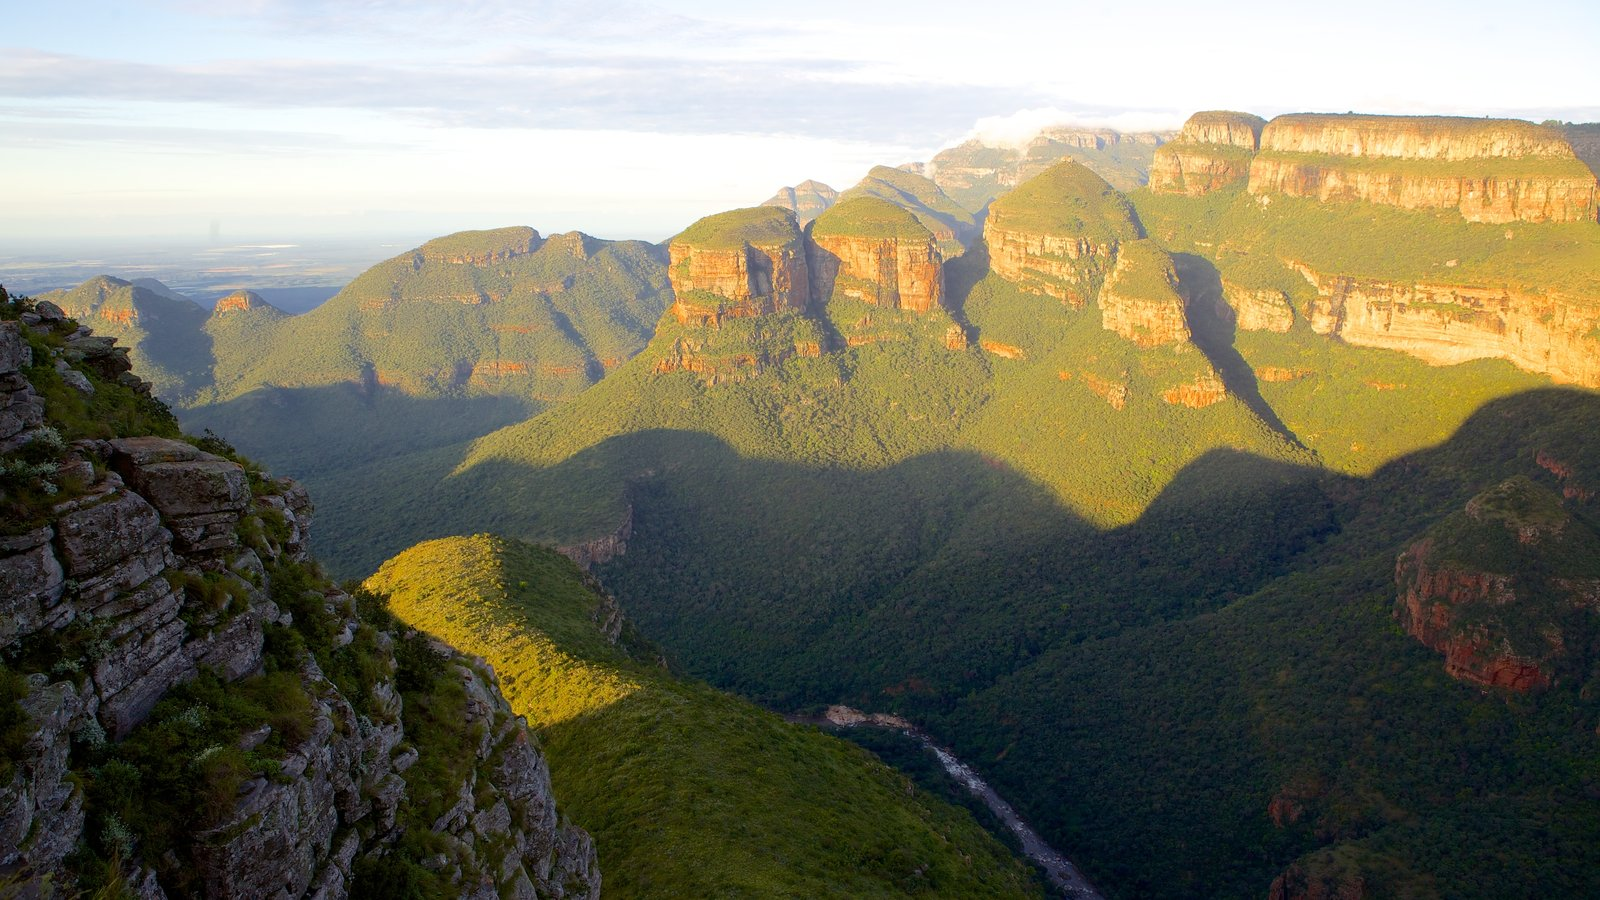 Nature pictures view images of mpumalanga limpopo mpumalanga limpopo featuring mountains a gorge or canyon and landscape views sciox Image collections